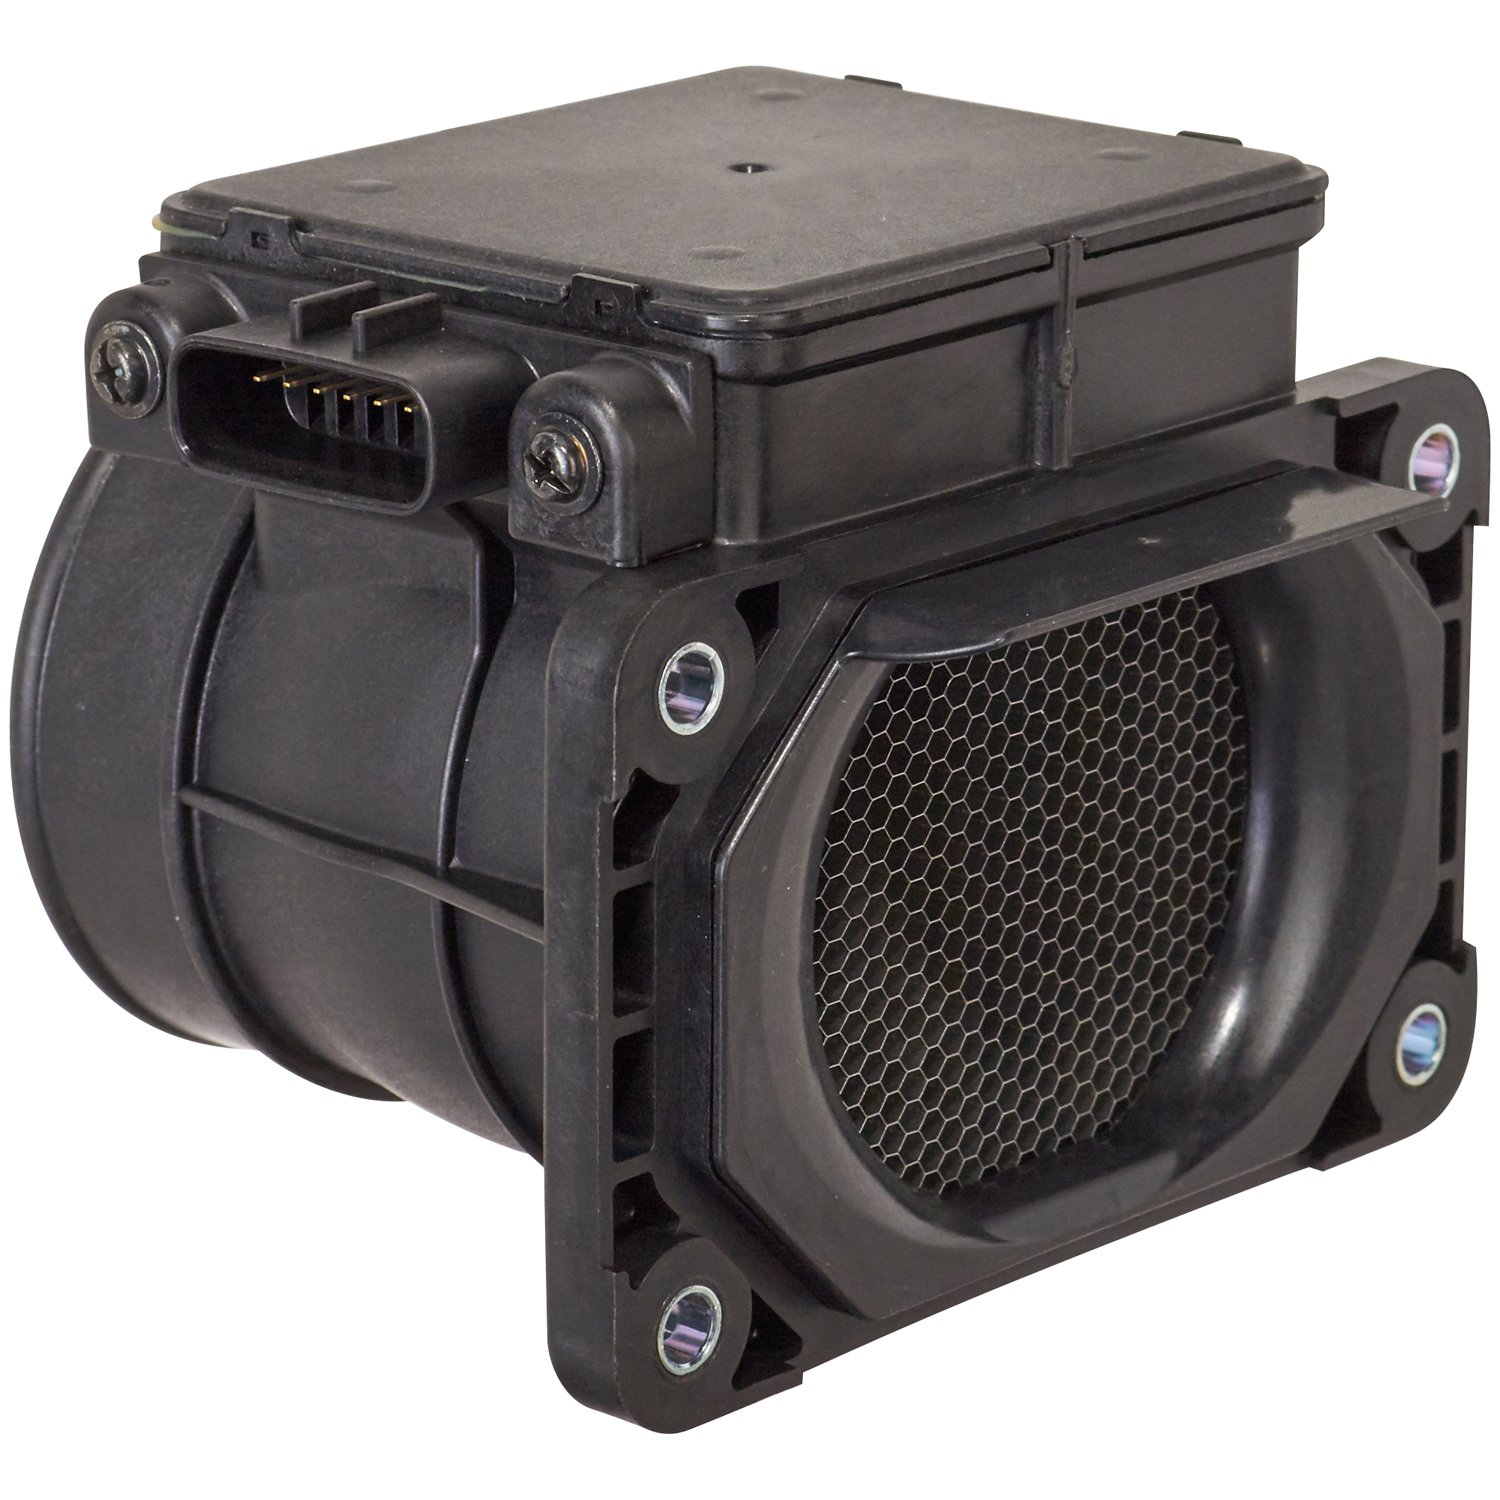 Spectra Premium MA363 Mass Air Flow Sensor